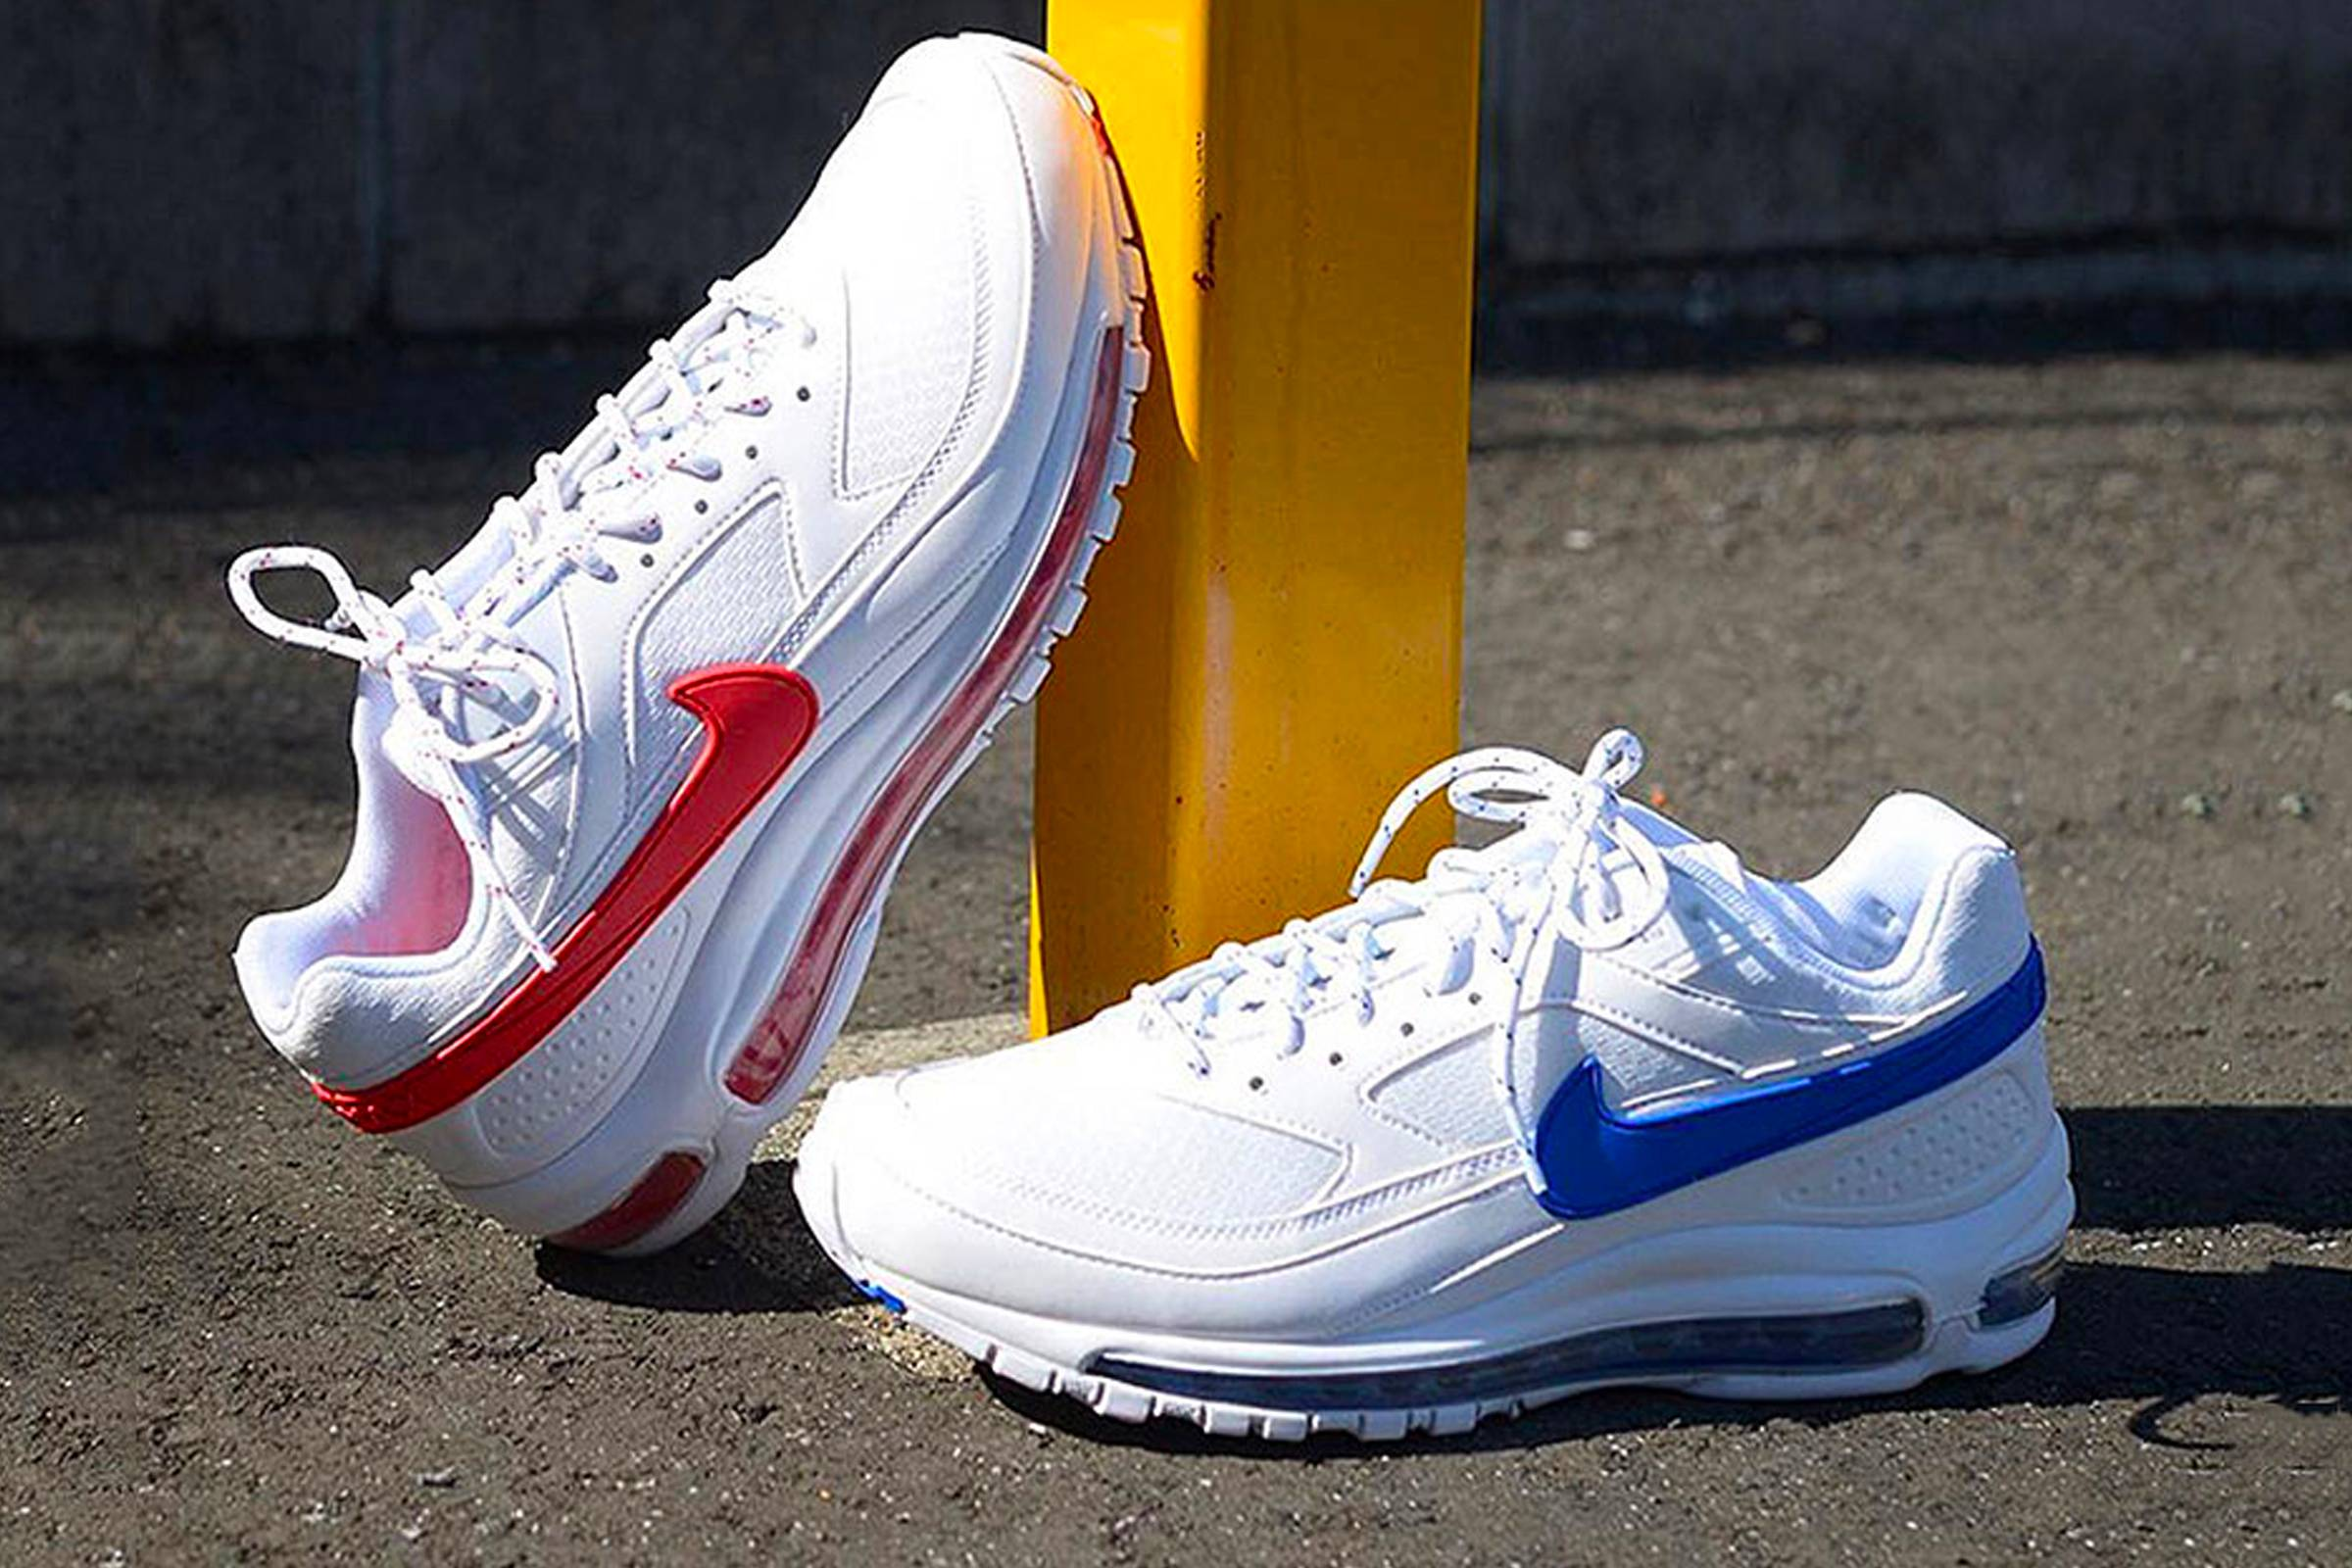 cf4327f8c4f4 Skepta s Latest Nike Collaboration Has a Release Date - Air Max 97 ...